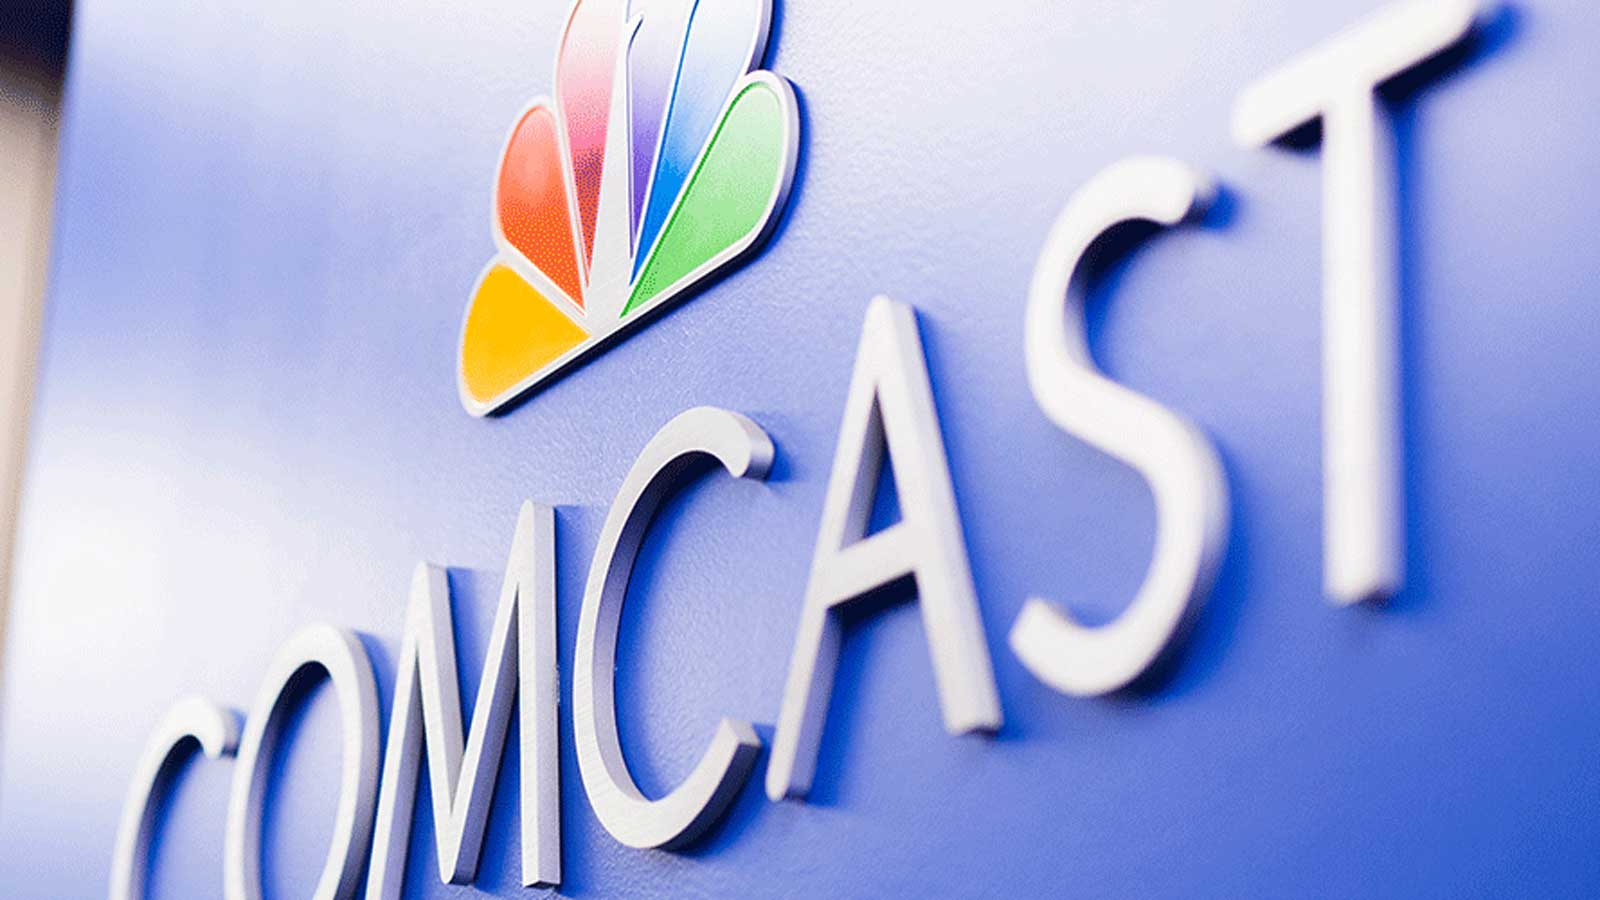 Comcast logo signage